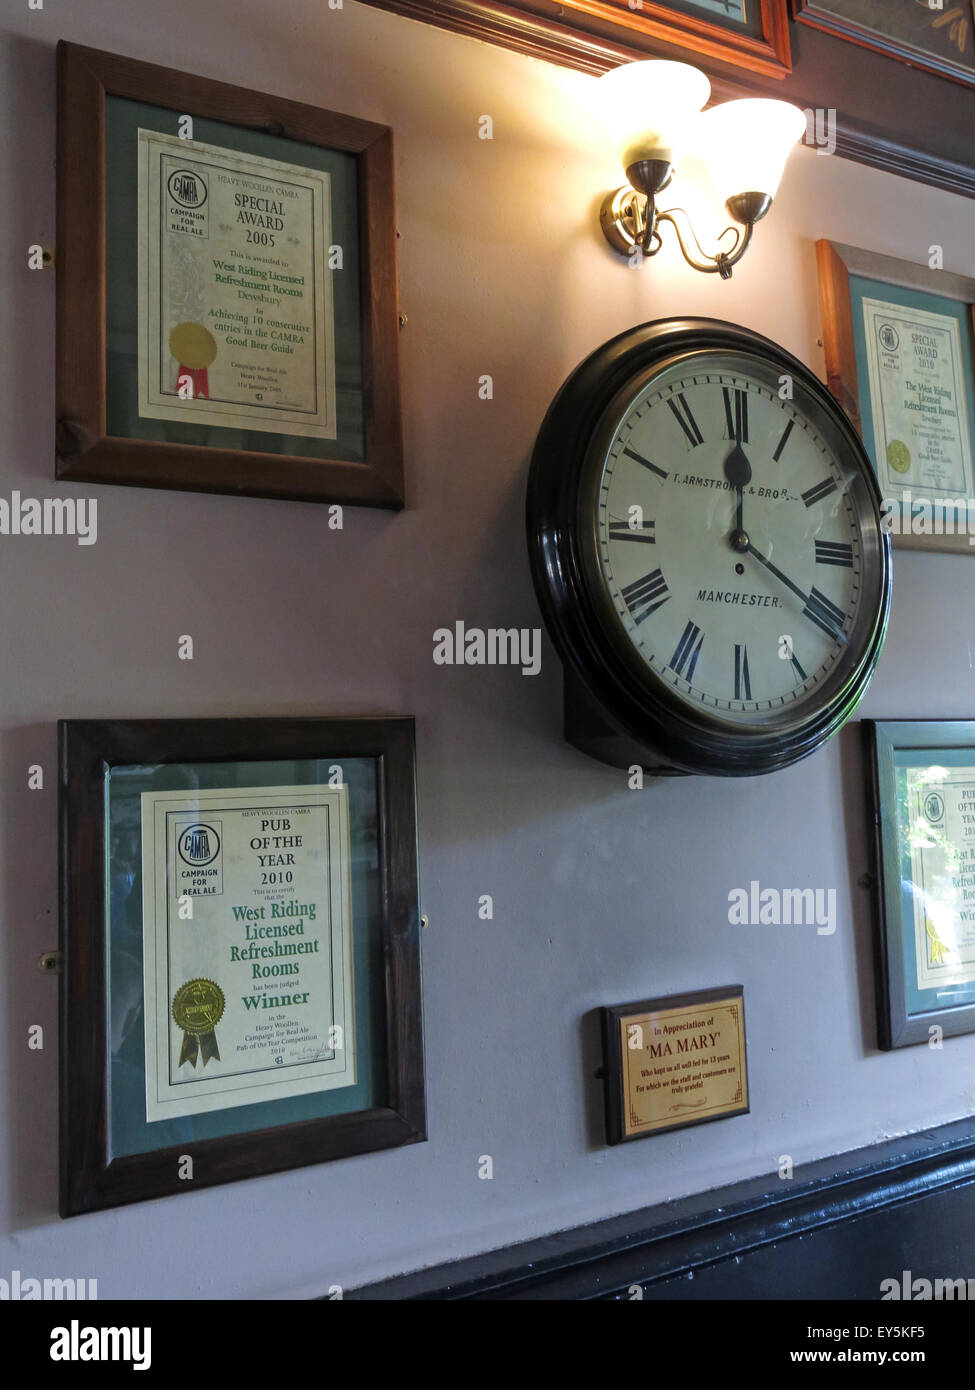 Real,Ale,realale,CAMRA,aletrail,WestRiding,bar,pubs,bars,drinking,drinkers,trans,pennine,transpennine,train,trains,trail,train,ales,platform,buffet,cafe,sign,Stalybridge,public,inside,interior,certificates,awards,Ale Train,Ale trail,GoTonySmith,Buy Pictures of,Buy Images Of